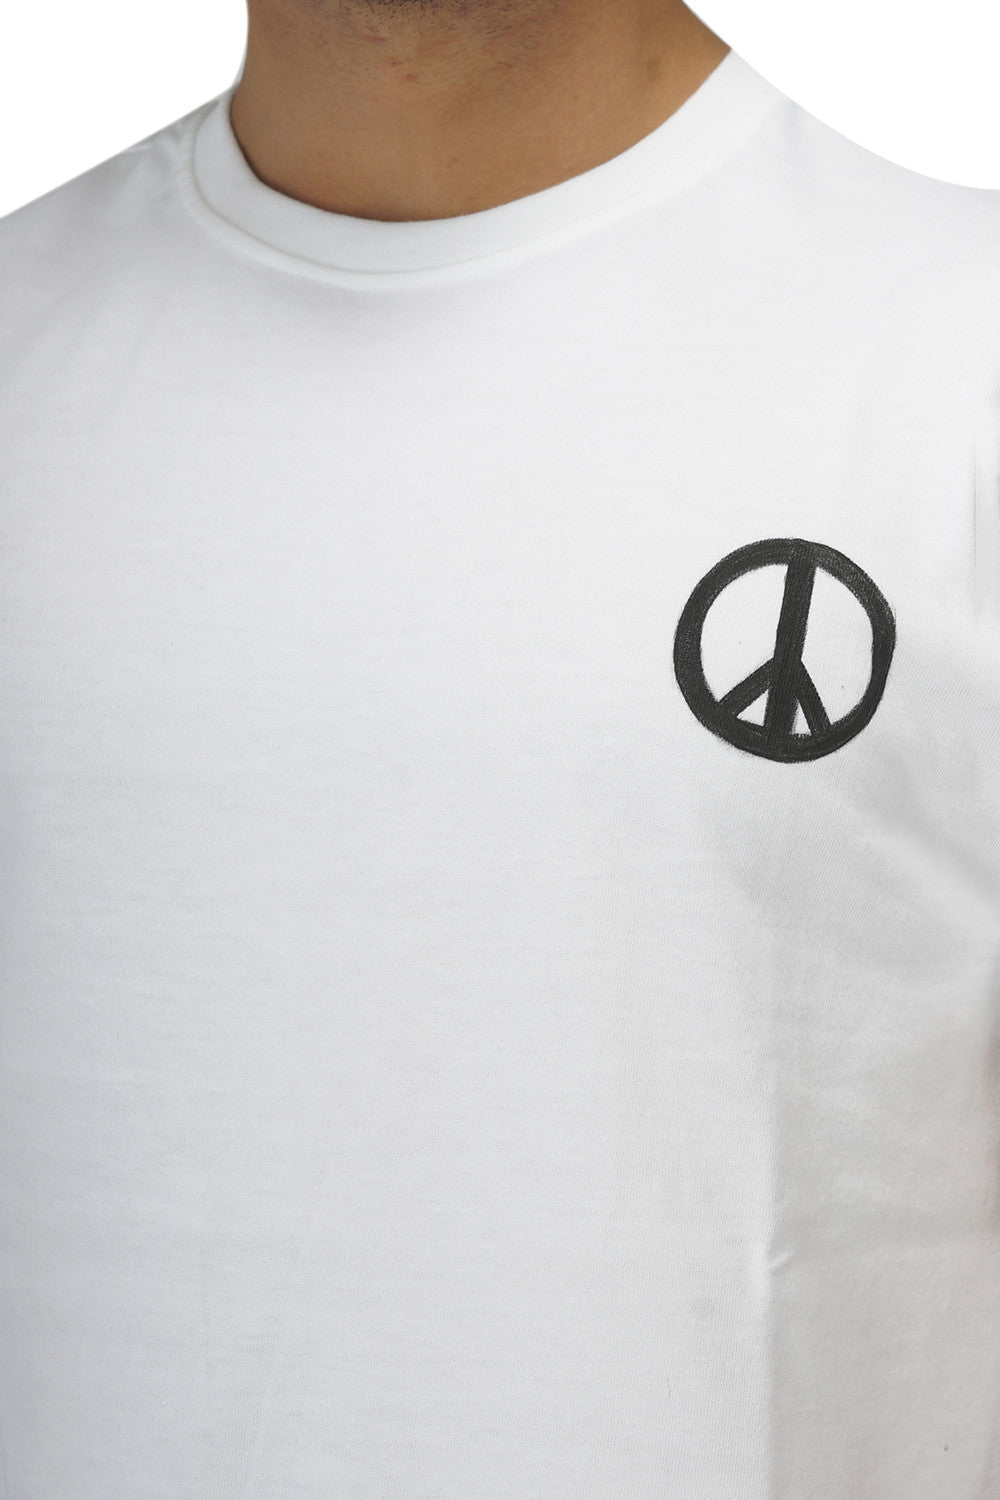 Hand-painted Peace White T-shirt - Rang Rage  - 5